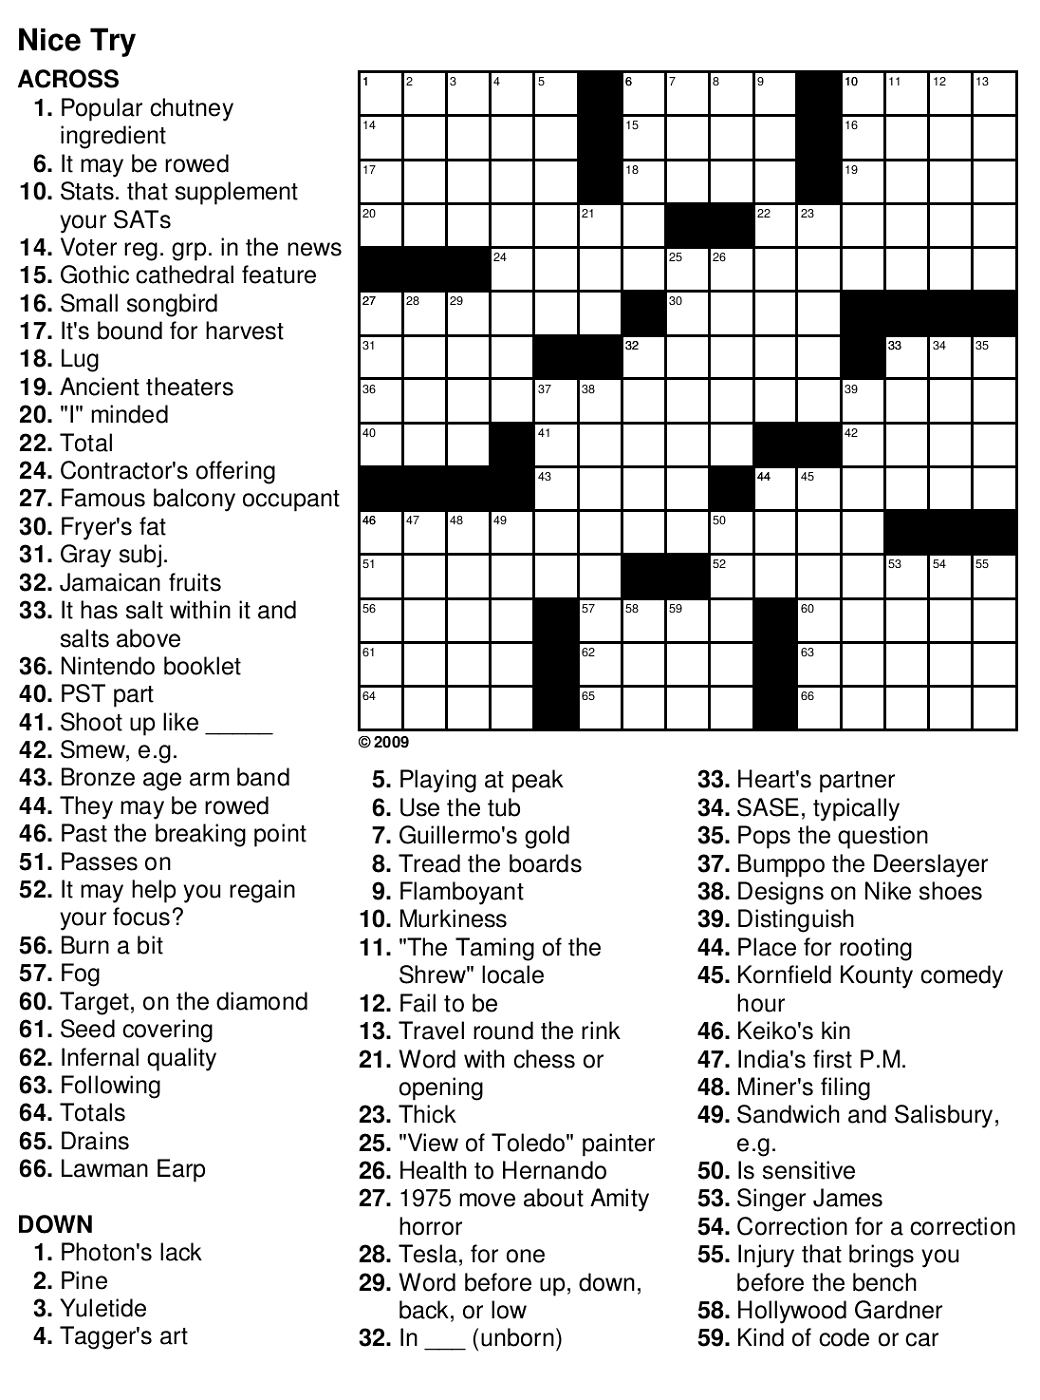 This is a graphic of Epic Printable Crossword Puzzles Free